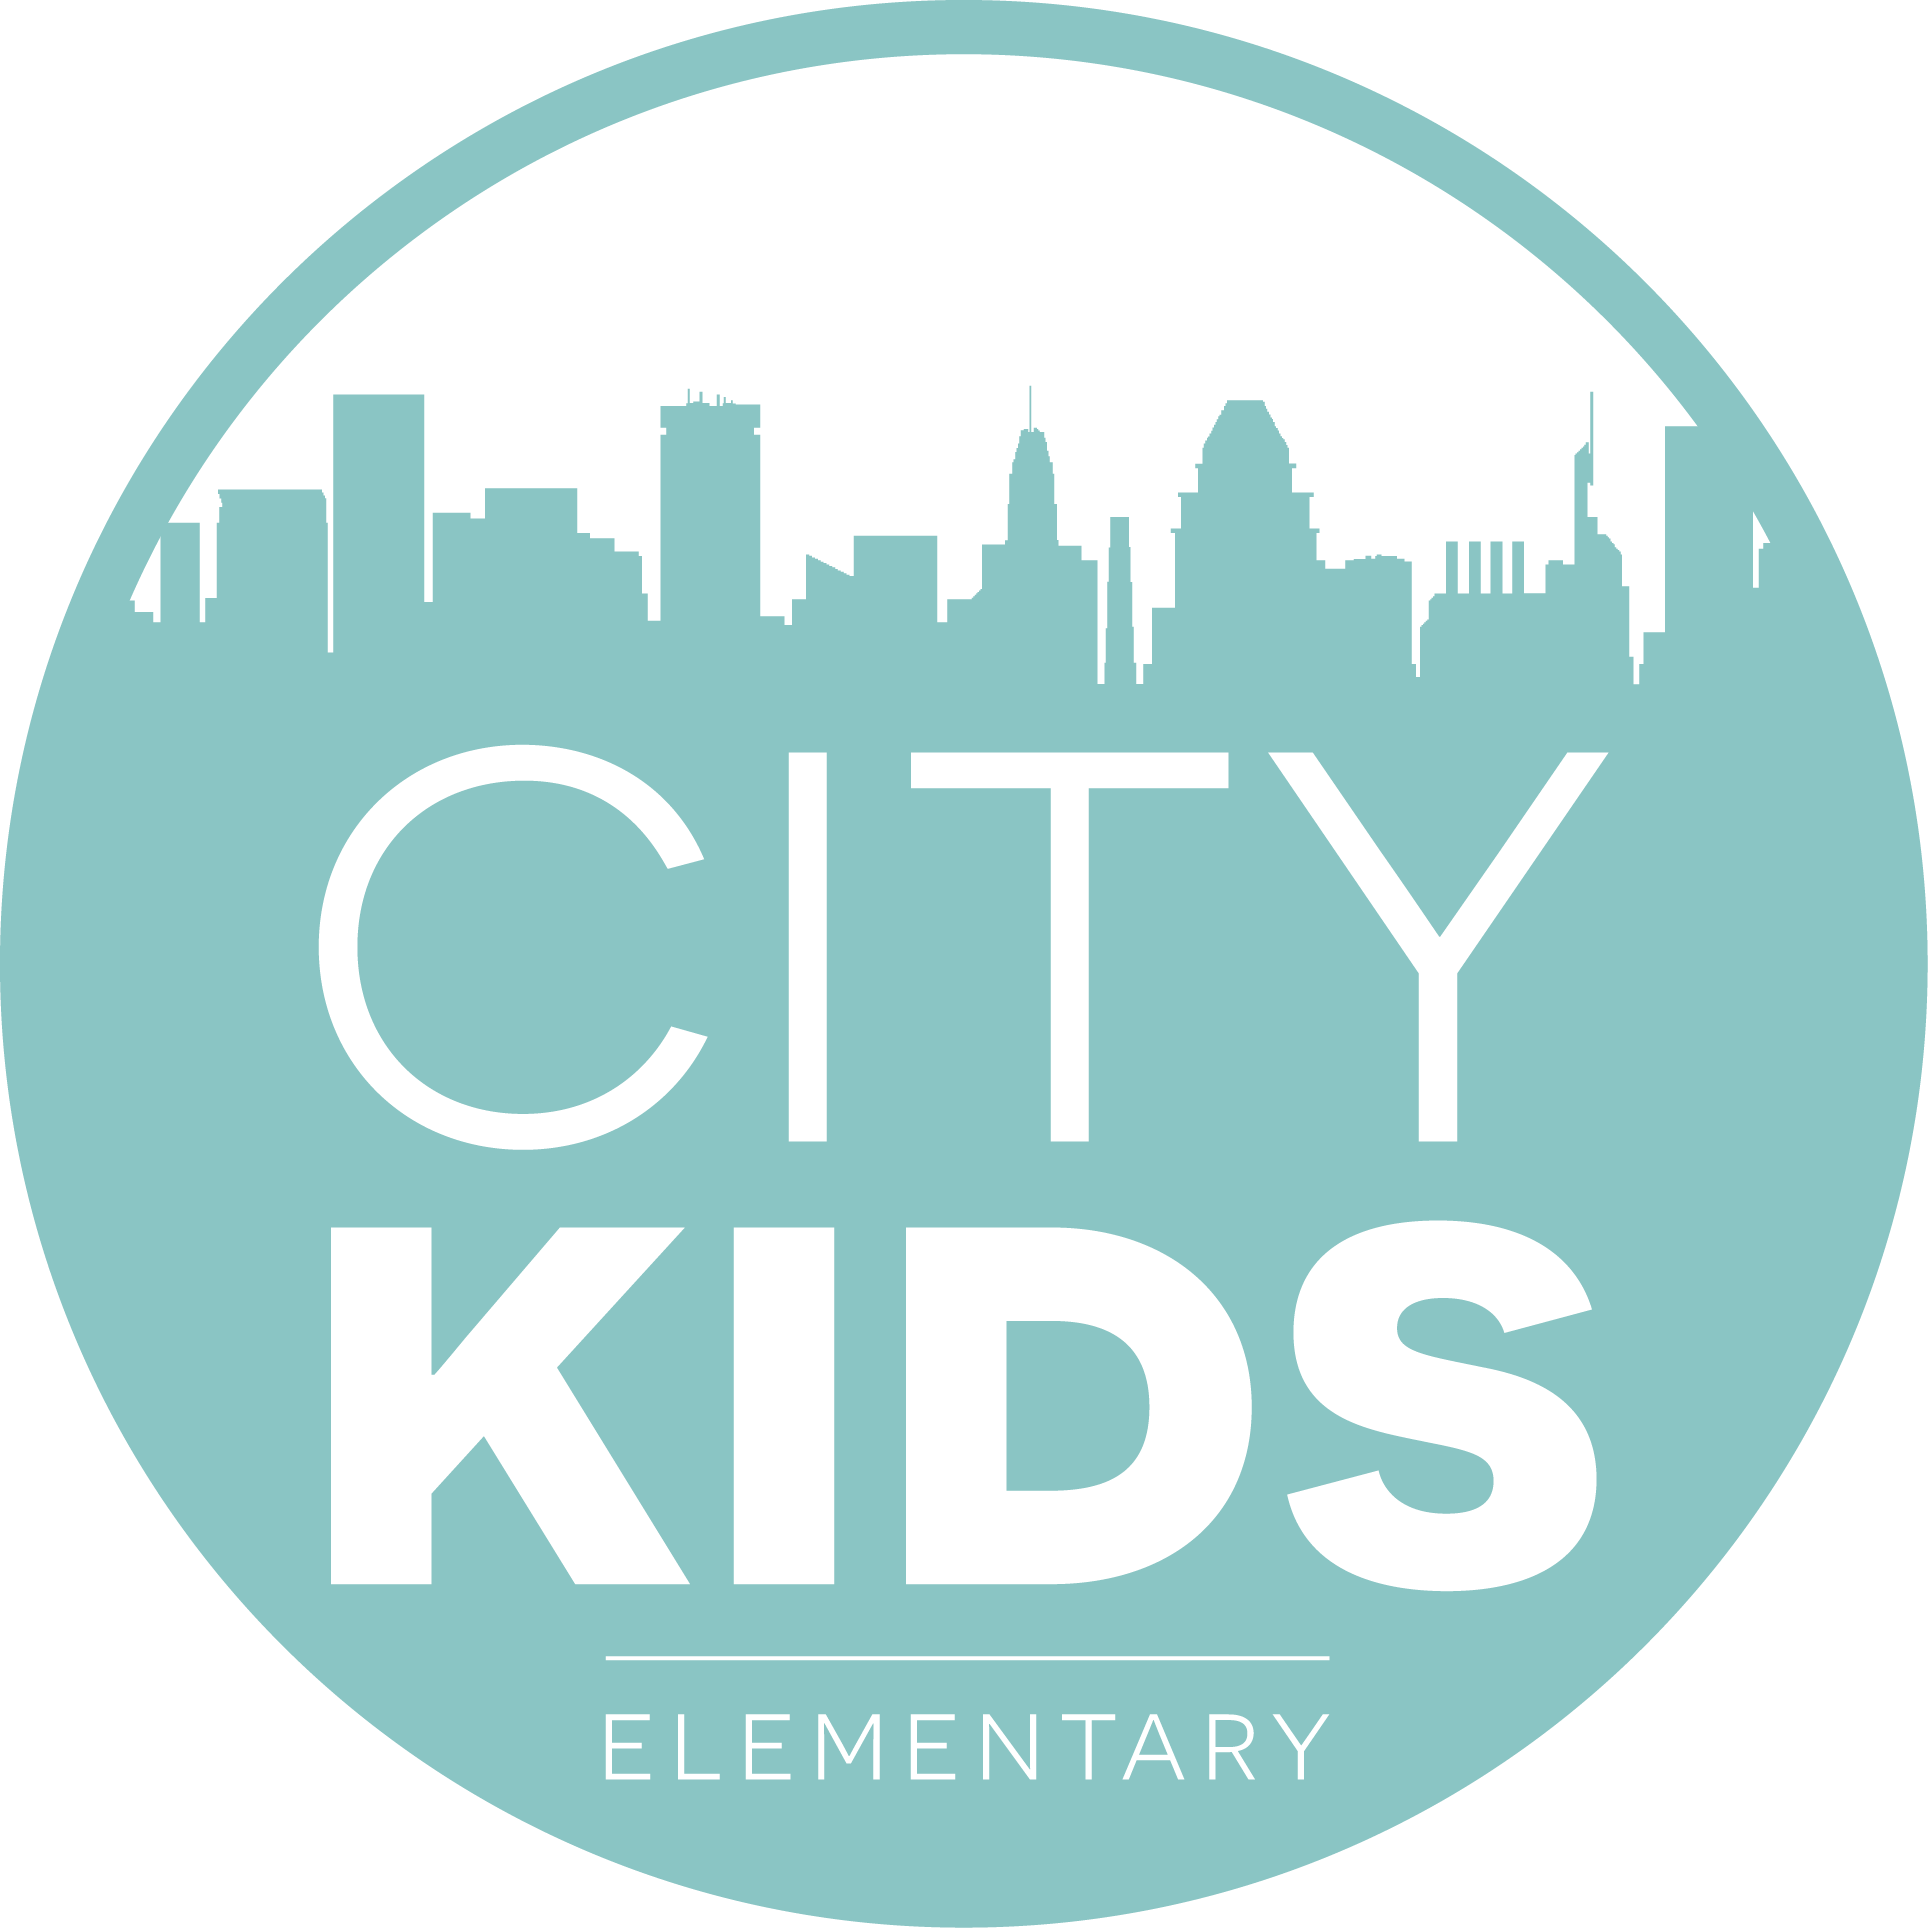 City_Kids_Logo_ELEMENTARY_2.png